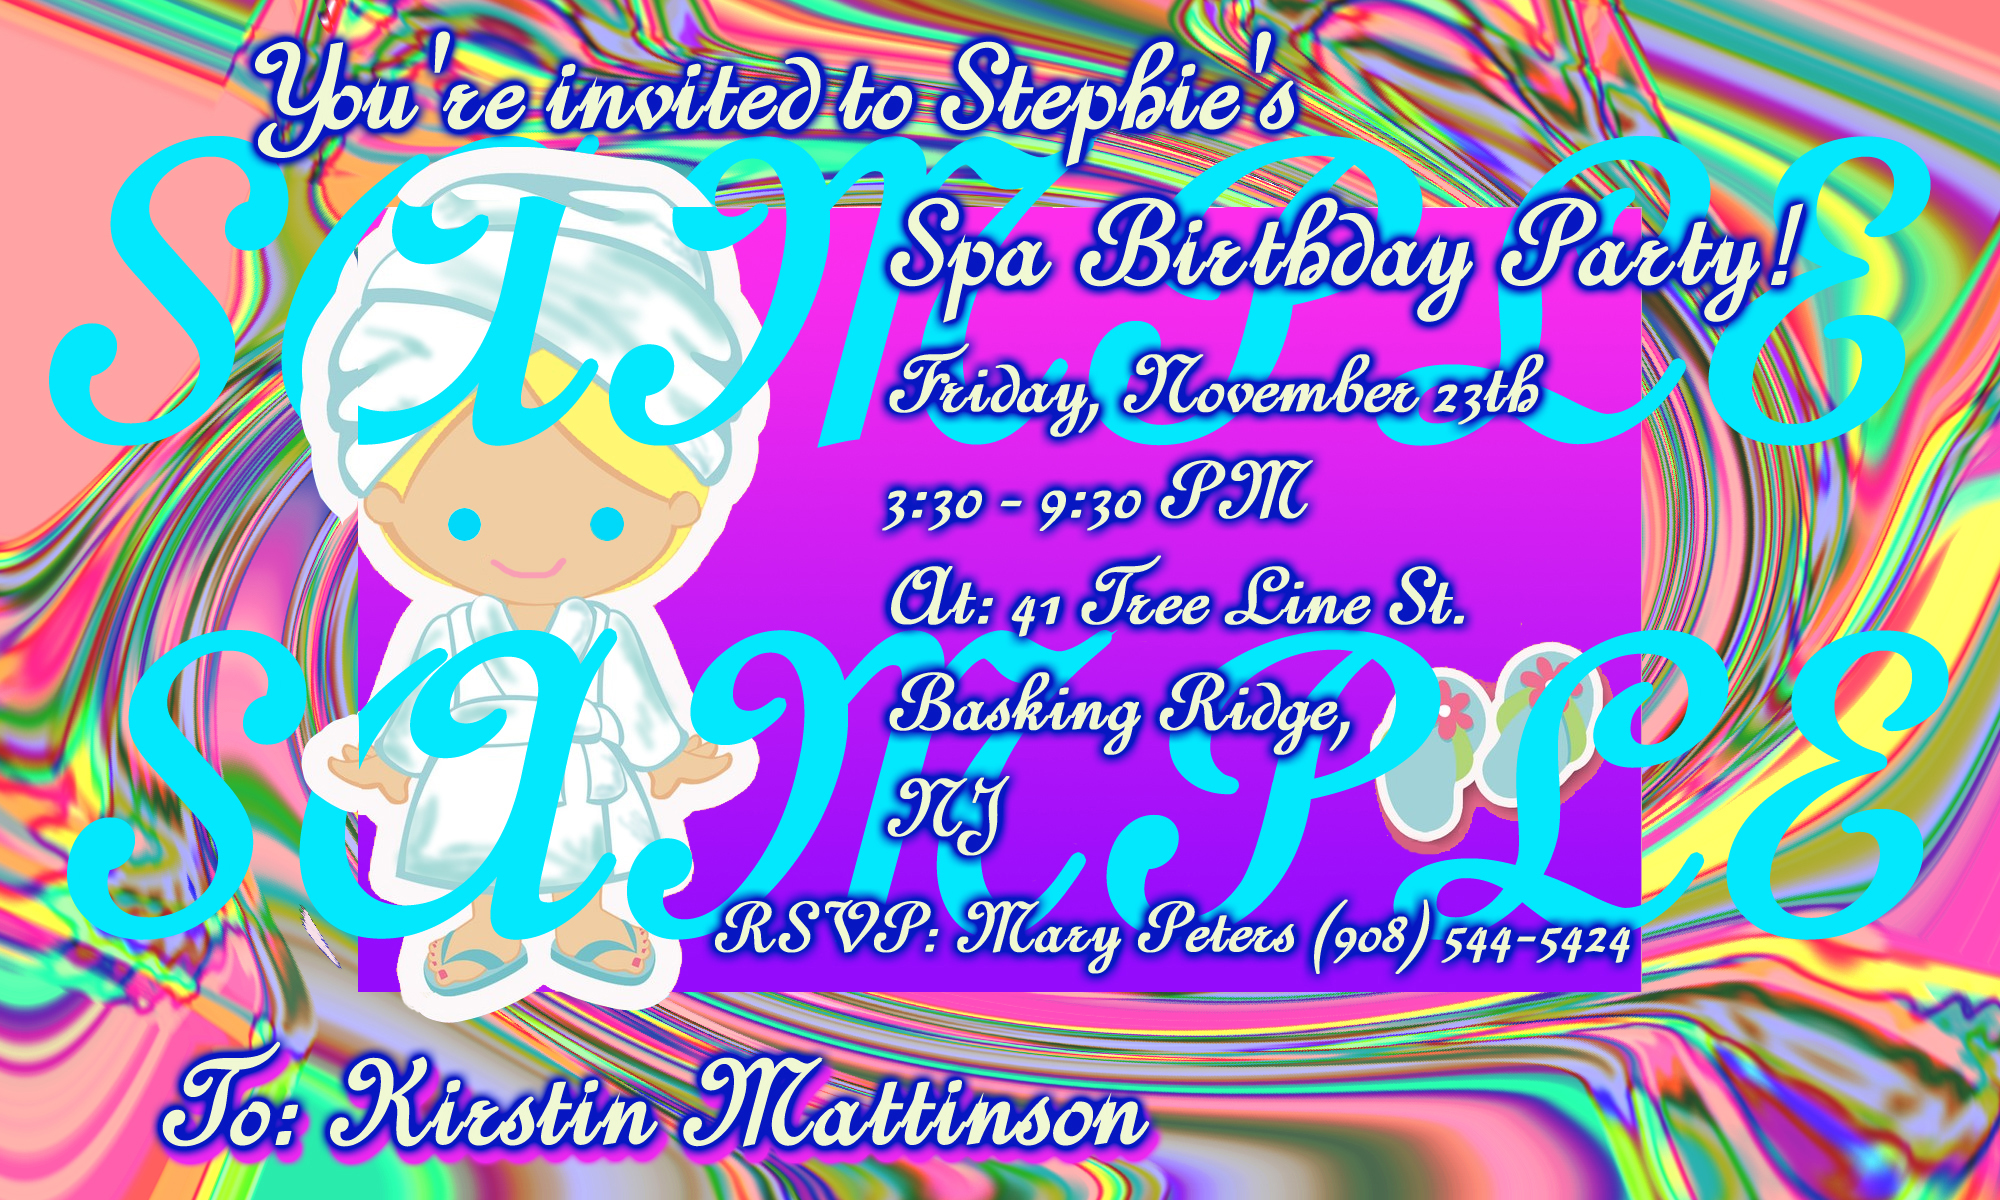 Kids spa party spa parties for girls spa birthday party girls kids spa party invitation design cartoonish blonde spa girl with murano swirled glass pattern background stopboris Image collections